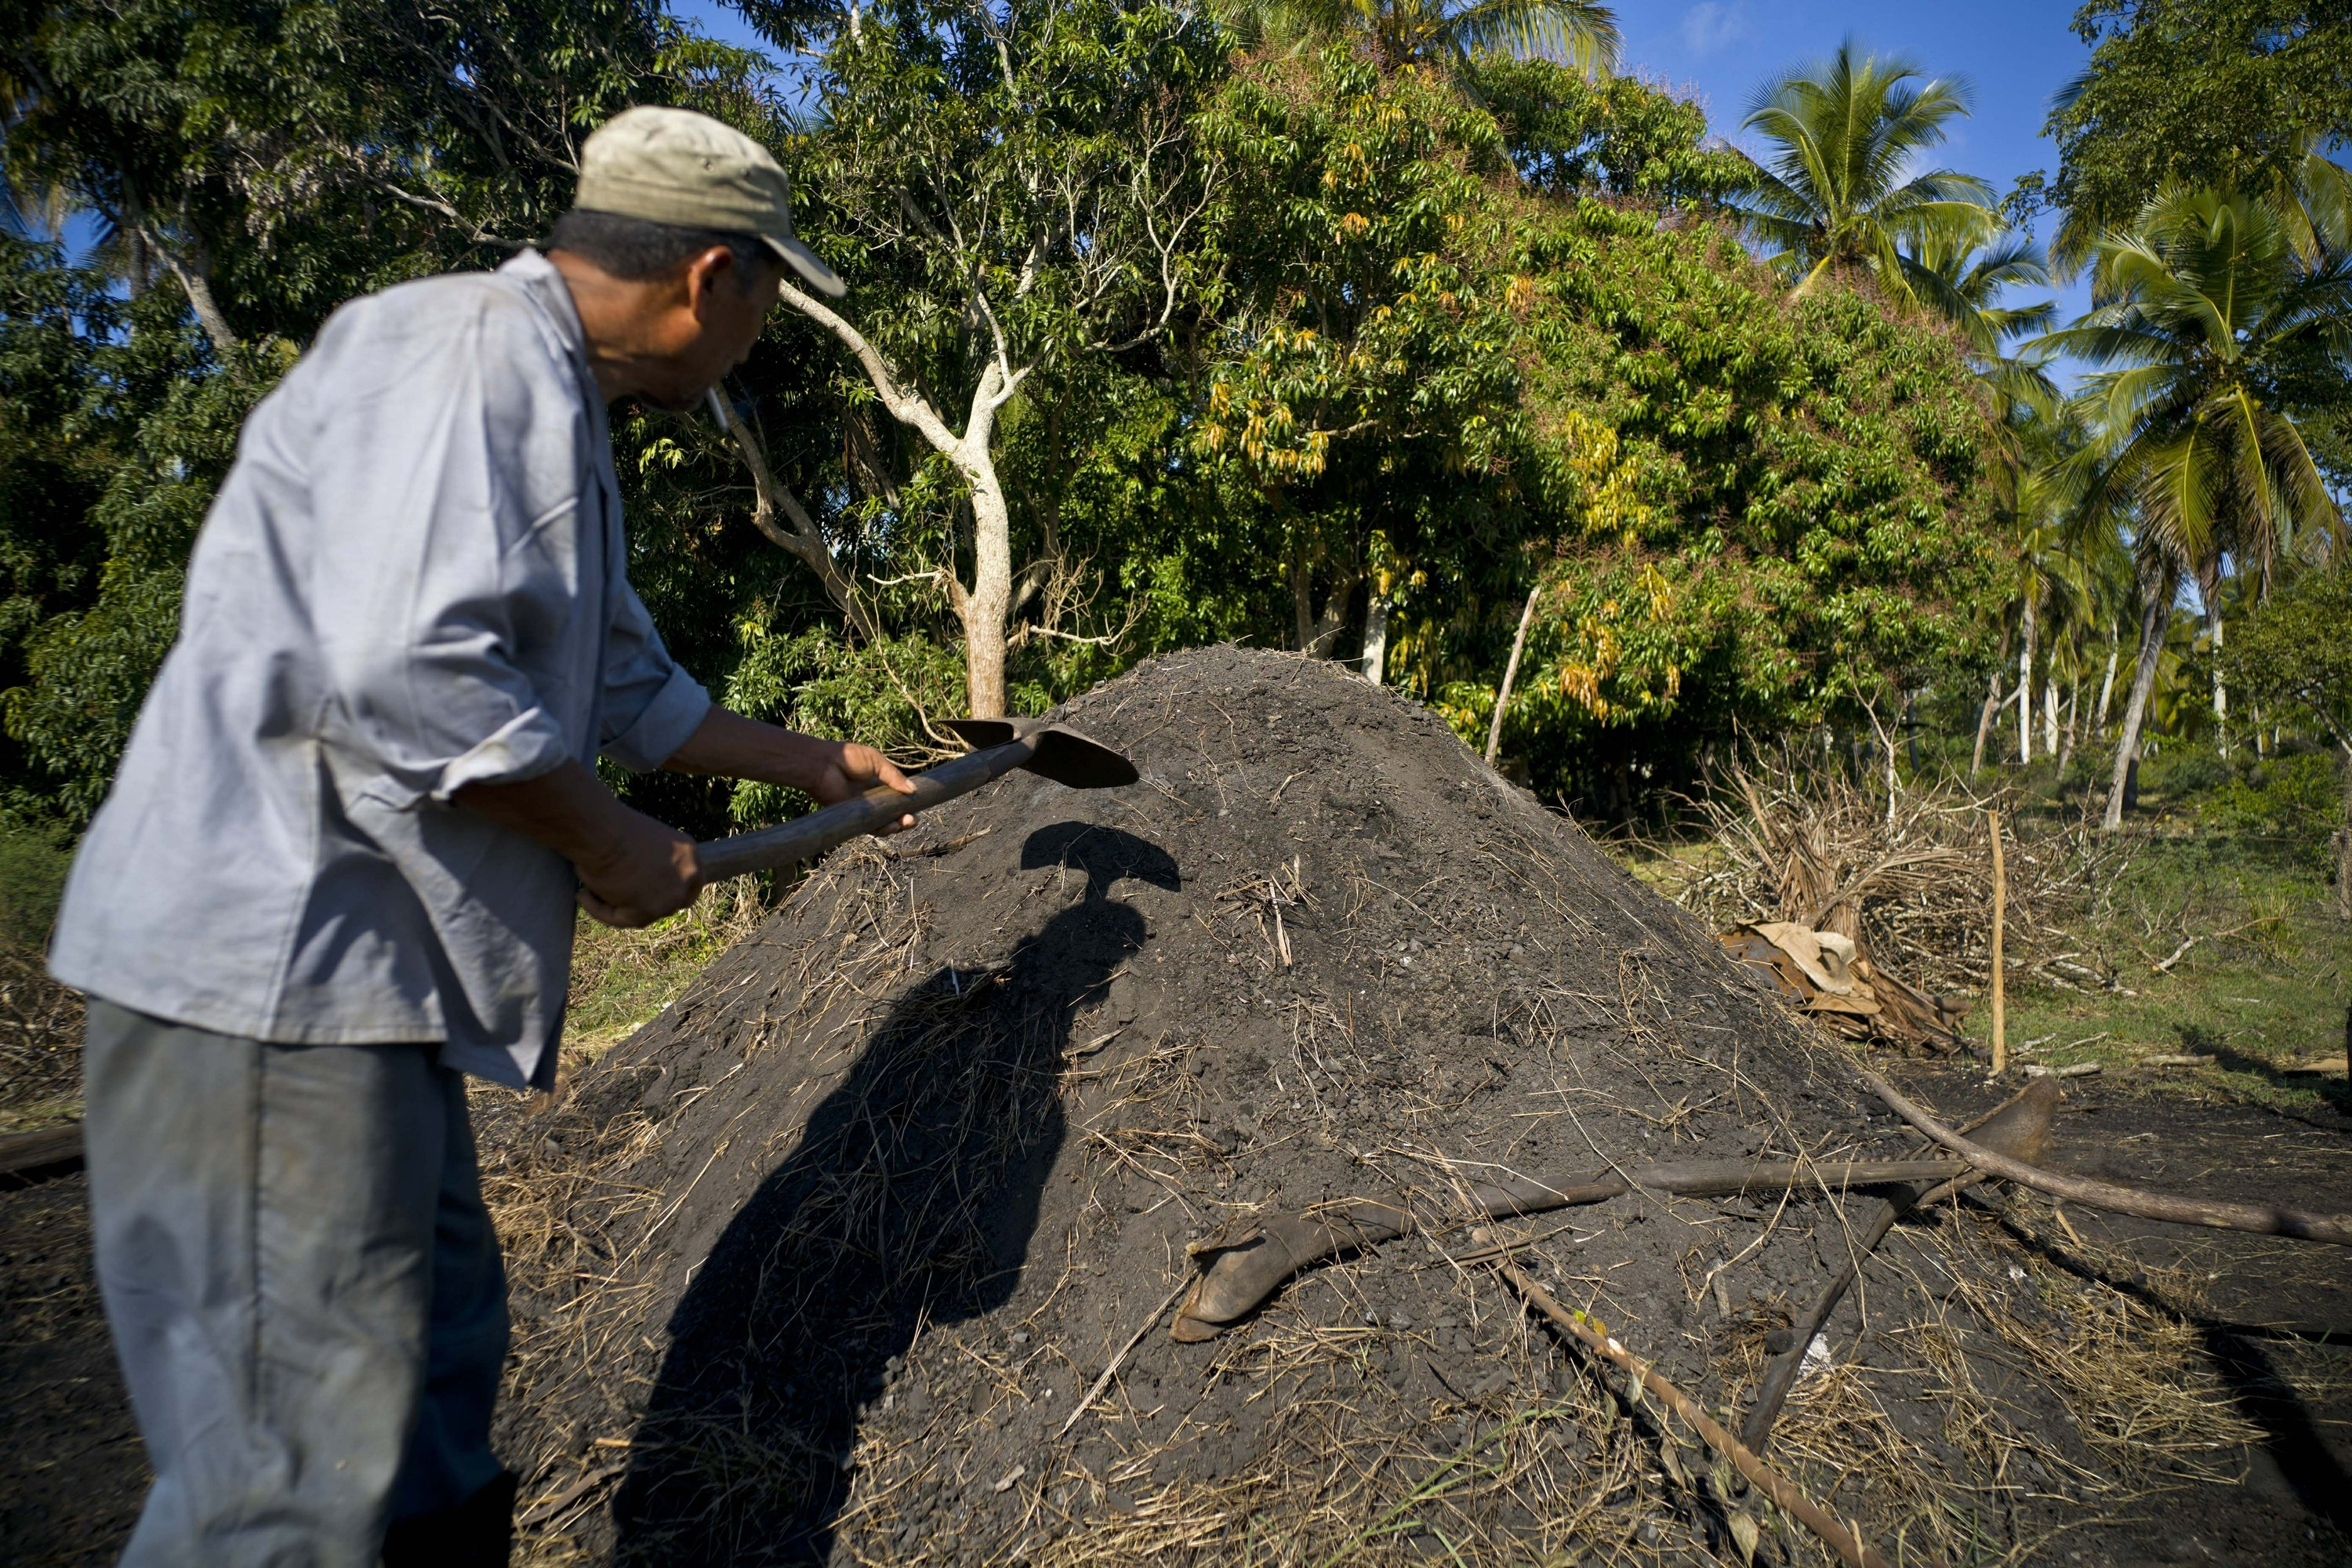 Artisanal marabu charcoal to become 1st Cuban export to US